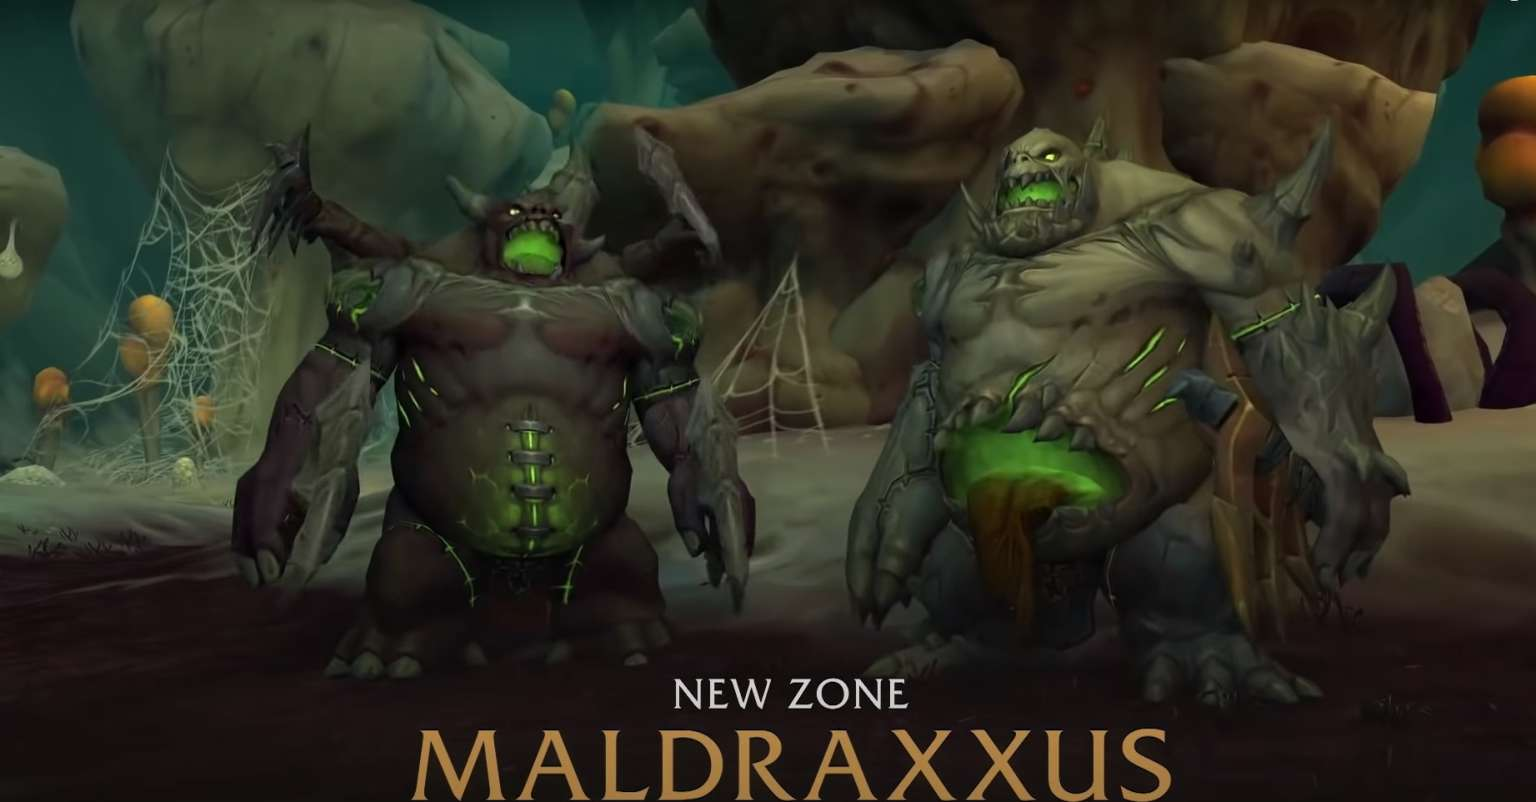 World Of Warcraft: Shadowlands' Scourge Invasion Event Brings Heightened Drop Rates For Commonly Farmed Item